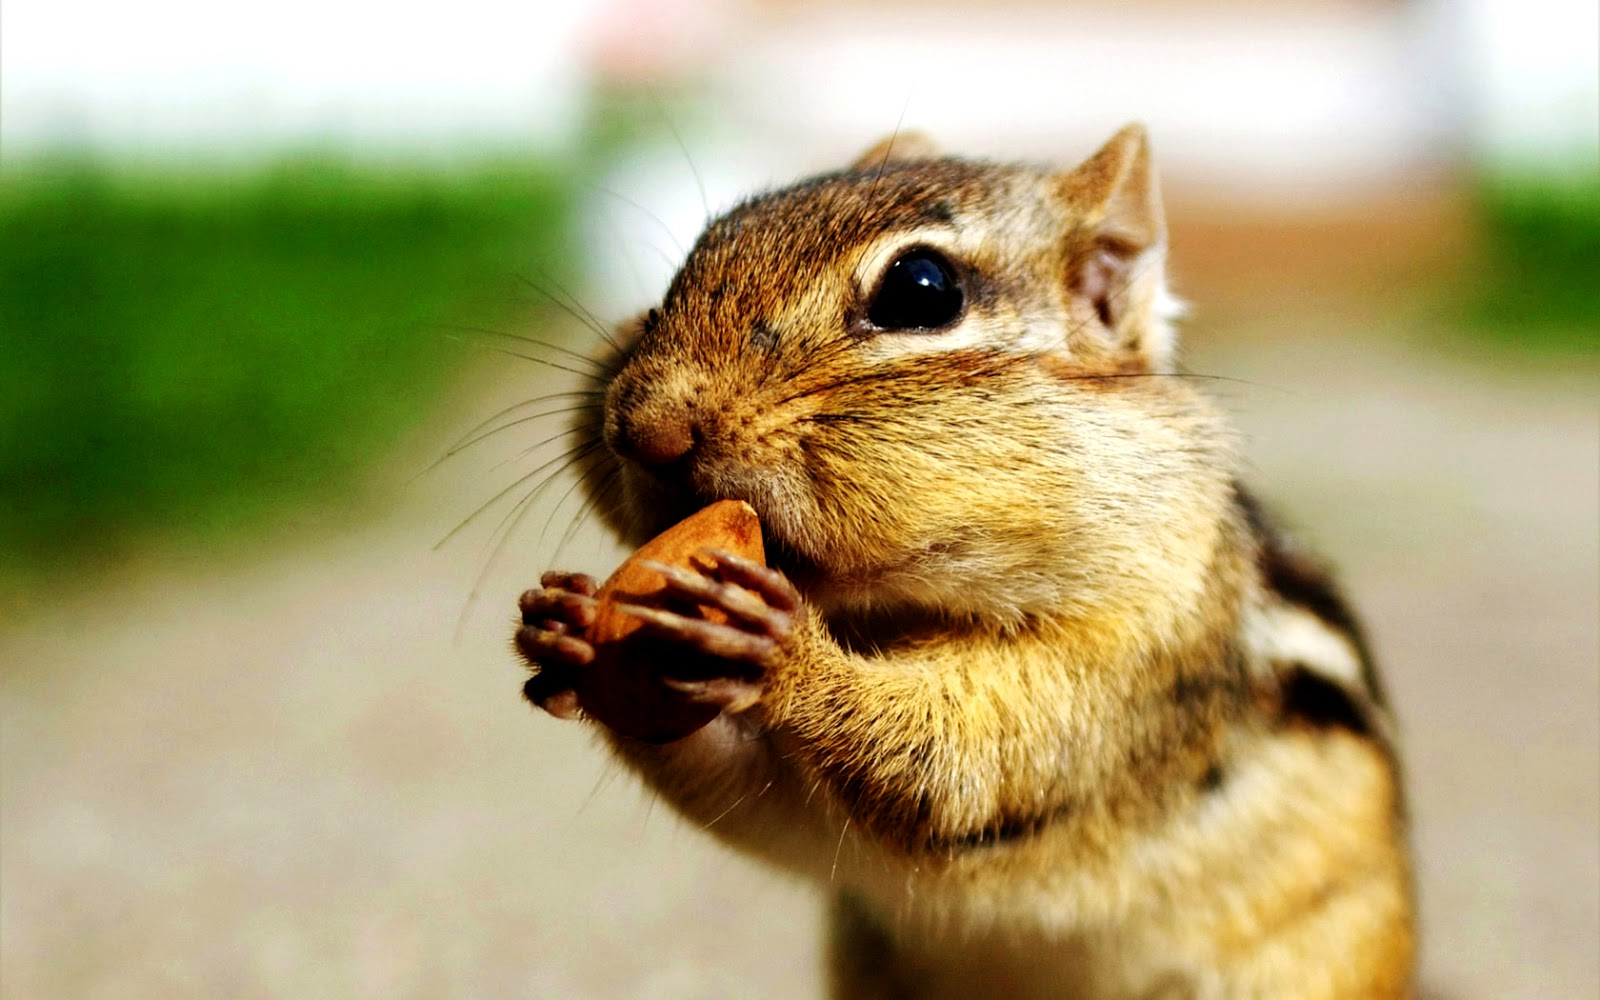 chipmunks The cute appearance and behavior of chipmunks tempt all animal lovers to keep them as pets however, before doing so, you need to be aware of a few important things here we discuss, if chipmunks are ideal as pets, and also provide guidelines for pet chipmunk care.